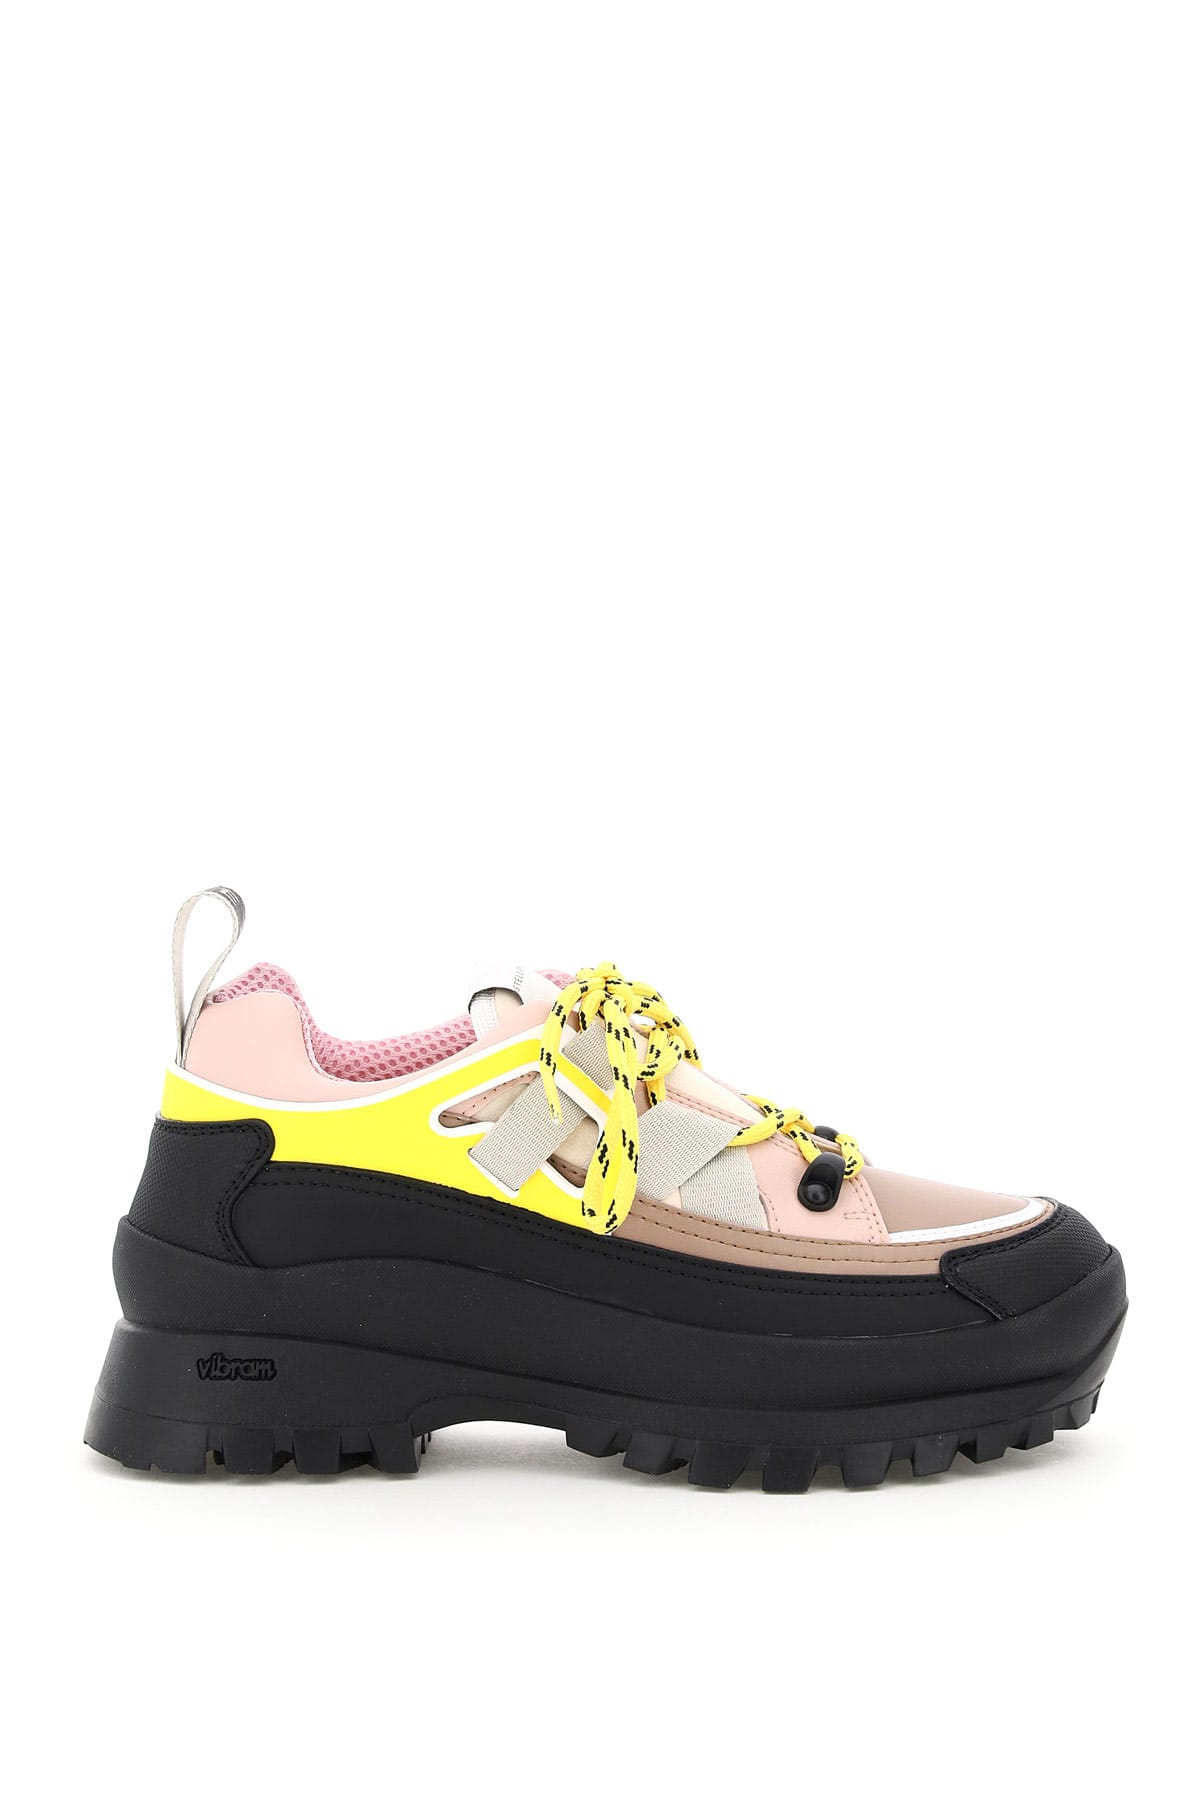 STELLA McCARTNEY MULTICOLOUR LACE-UP SHOES 40 Yellow, Black, Pink Faux leather